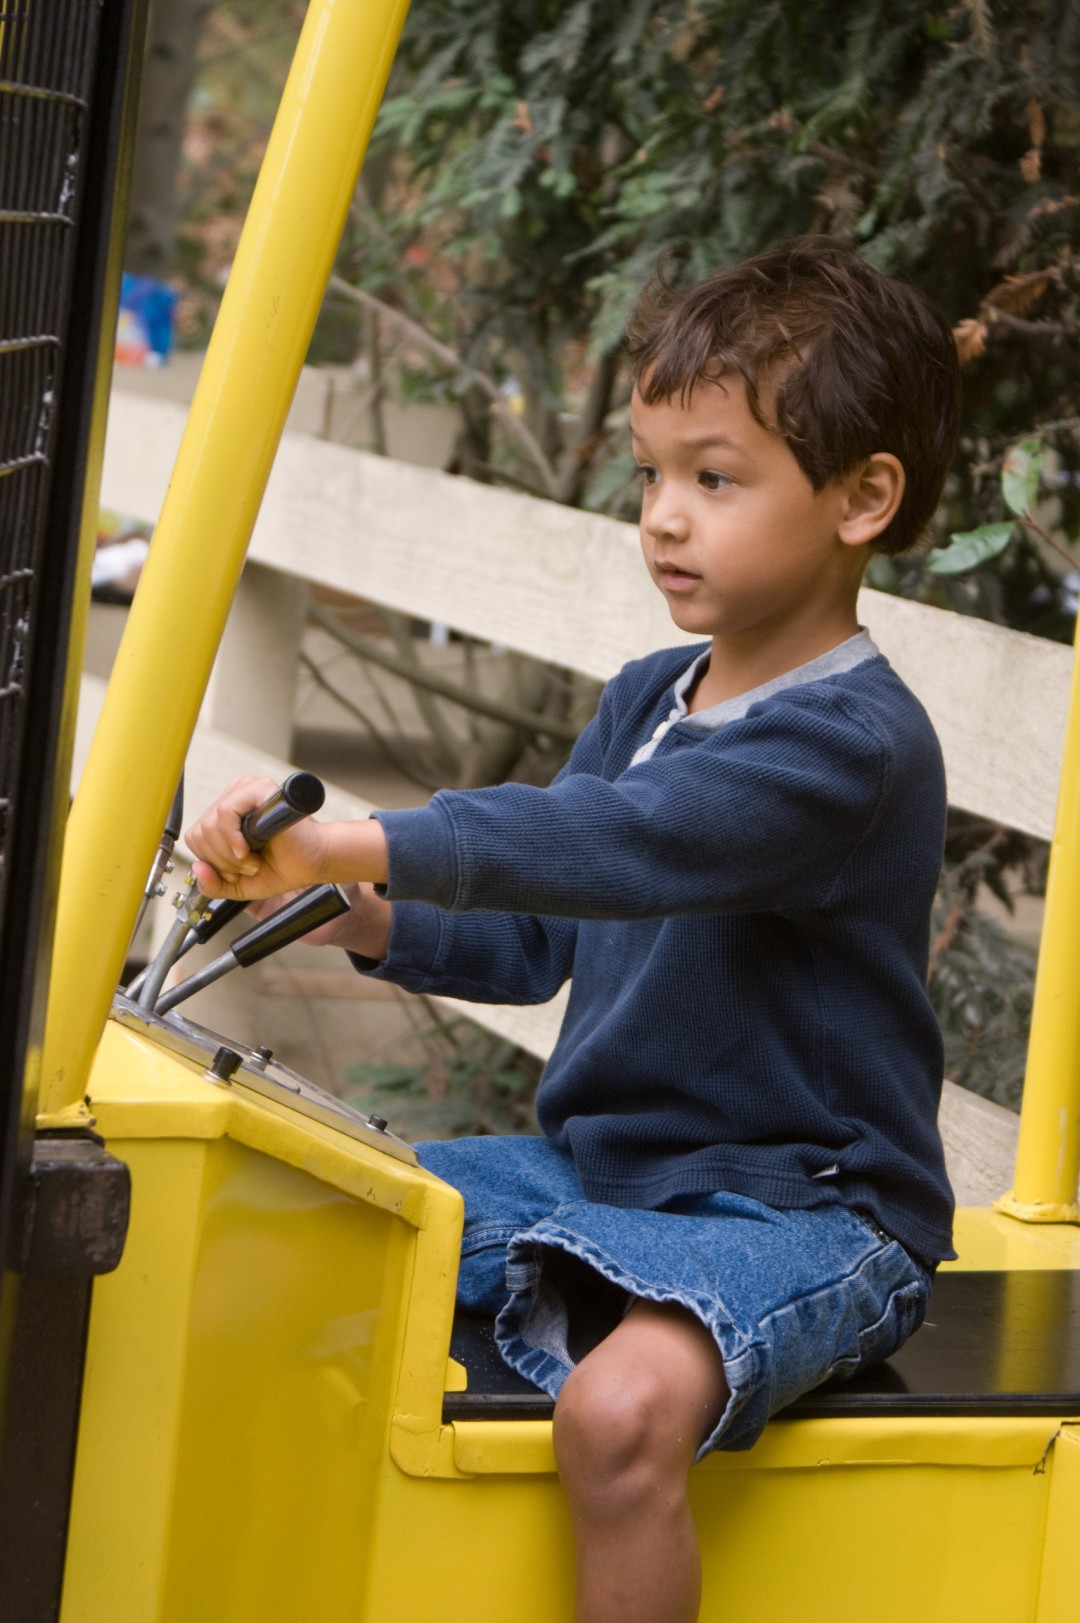 Driving the digger